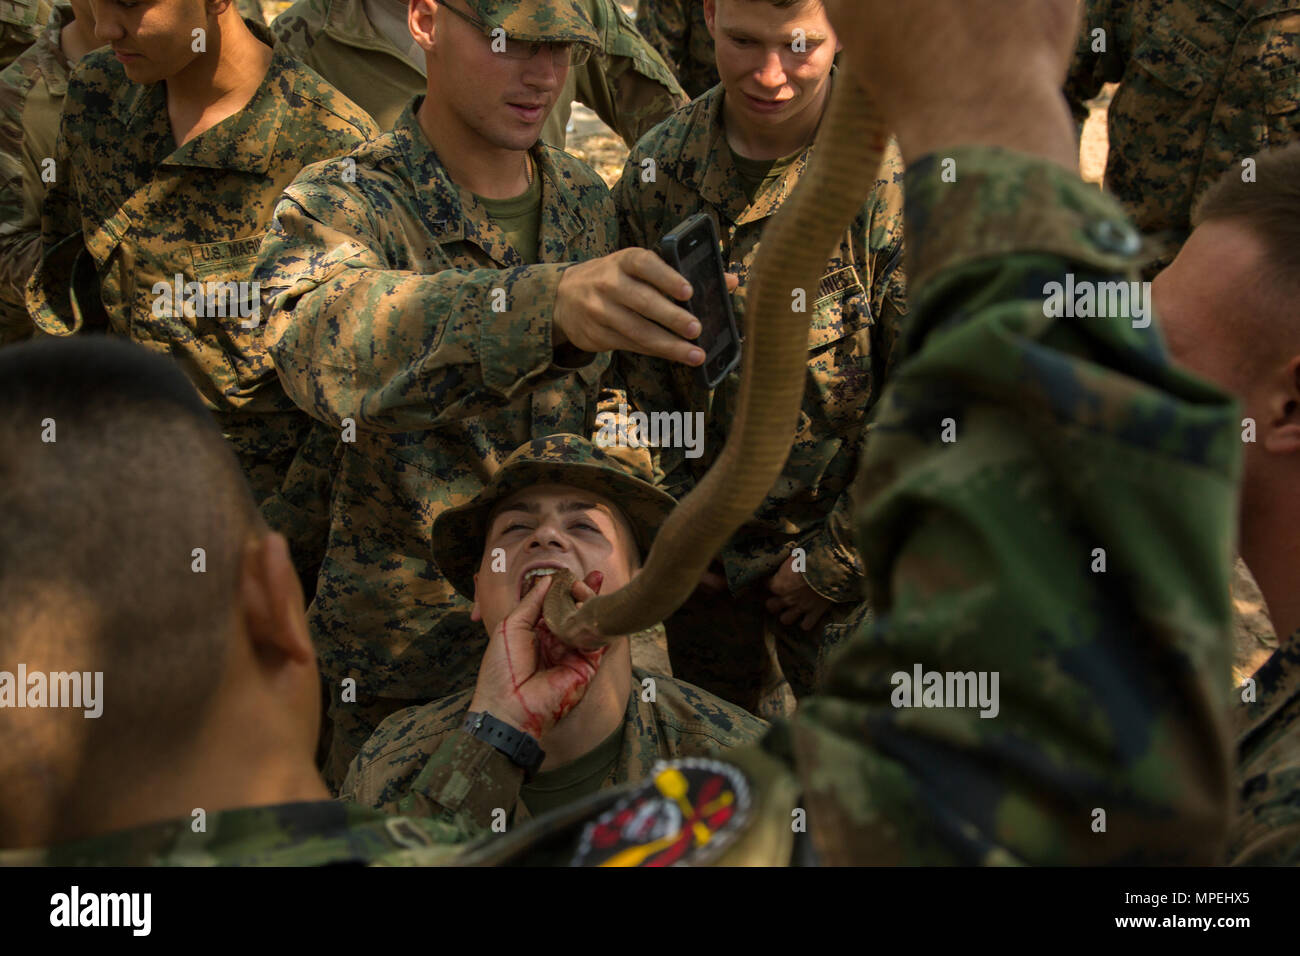 U.S. Marines drink cobra blood during Exercise Cobra Gold 17 at Camp Ban Chan Krem, Thailand, February17, 2017. Cobra blood and flesh are used as nutrition in a scenario where sustenance is scarce. Royal Thai Marines demonstrated various methods of surviving in the jungle. Cobra Gold is the largest Theater Security Cooperation exercise in the Indo-Asia-Pacific region and is an integral part of the U.S. commitment to strengthen engagement in the region. The U.S. Marines are with Battalion Landing Team, 2nd Battalion, 5th Marine Regiment assigned to the 31st Marine Expeditionary Unit, III Marine Stock Photo